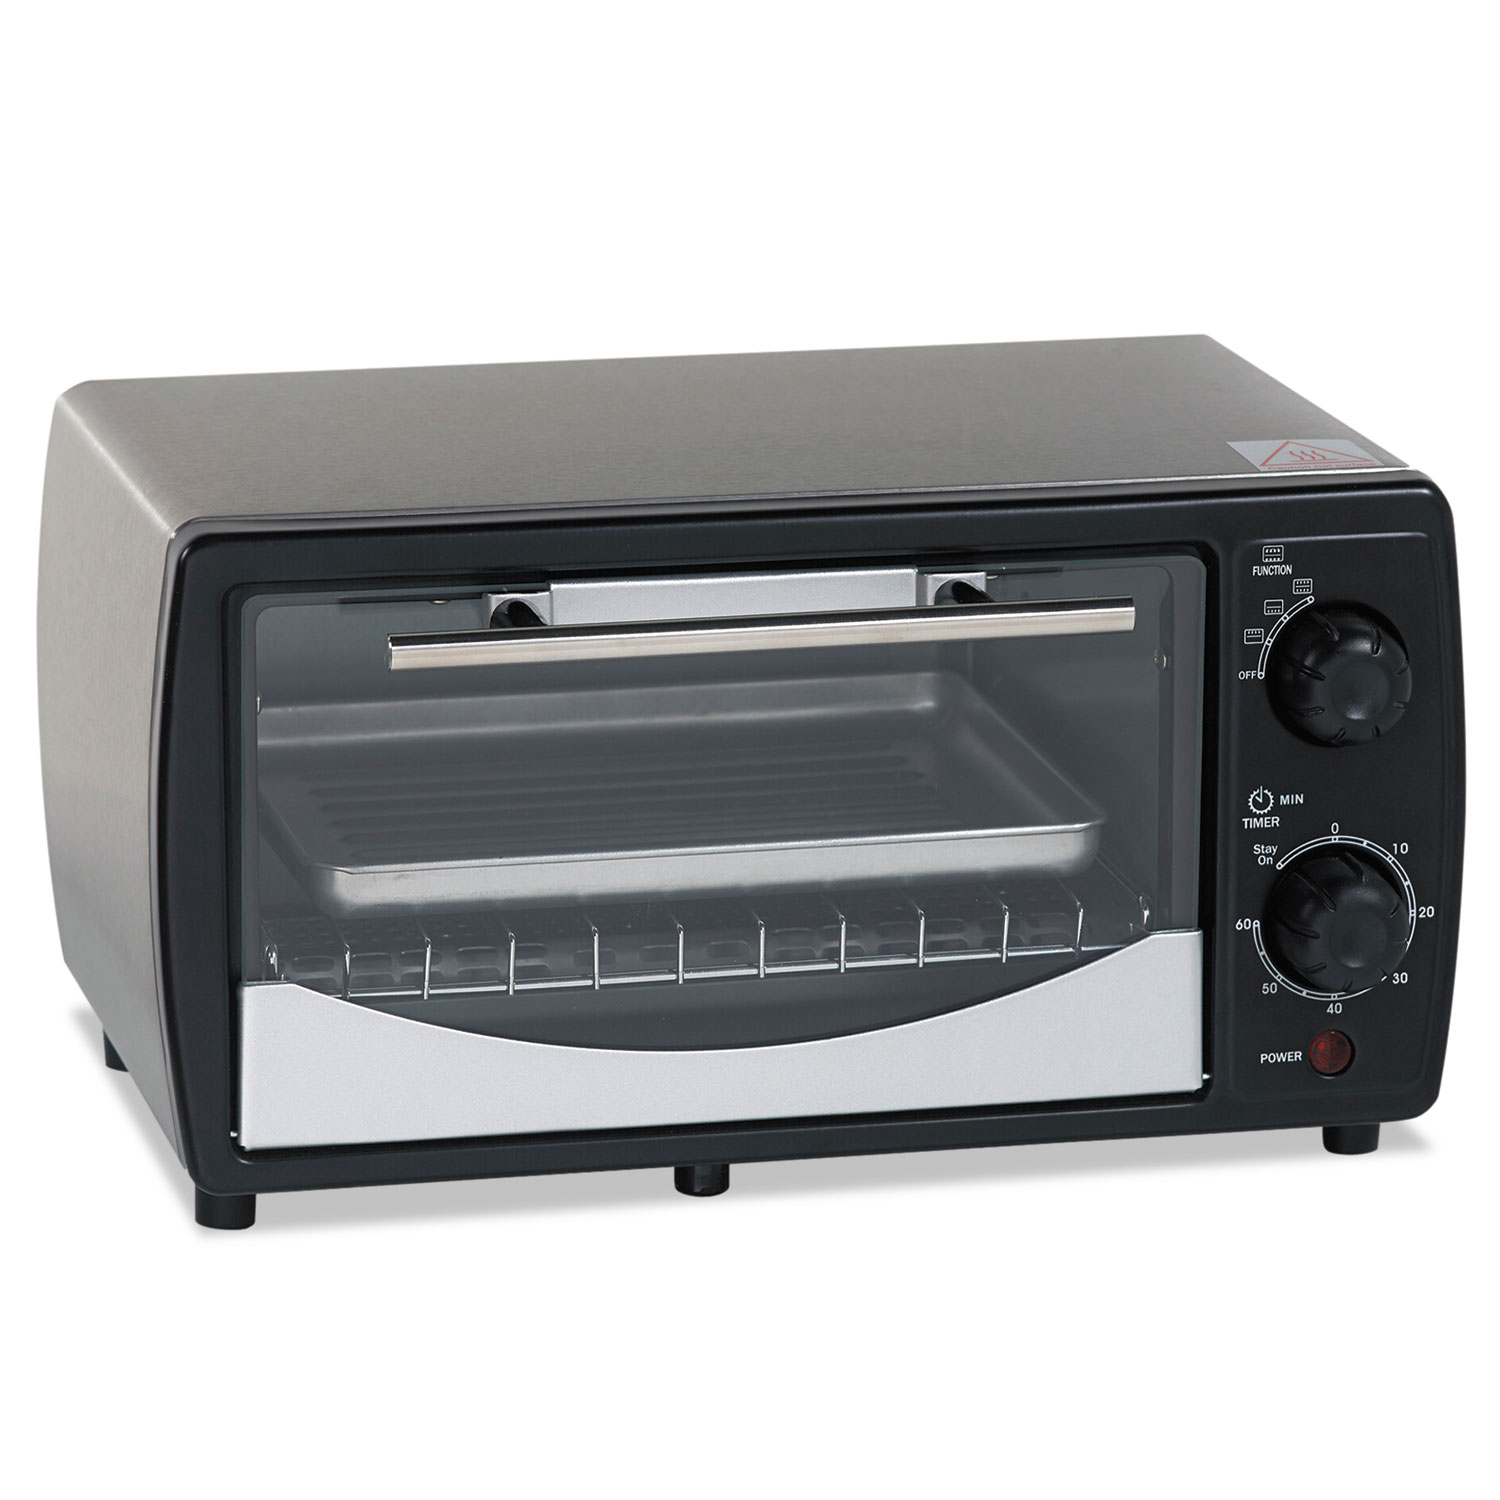 over uts fingerhut full image hover scl tssttvpzda to product for convection small pizza oster oven with va toaster drawer zoom click